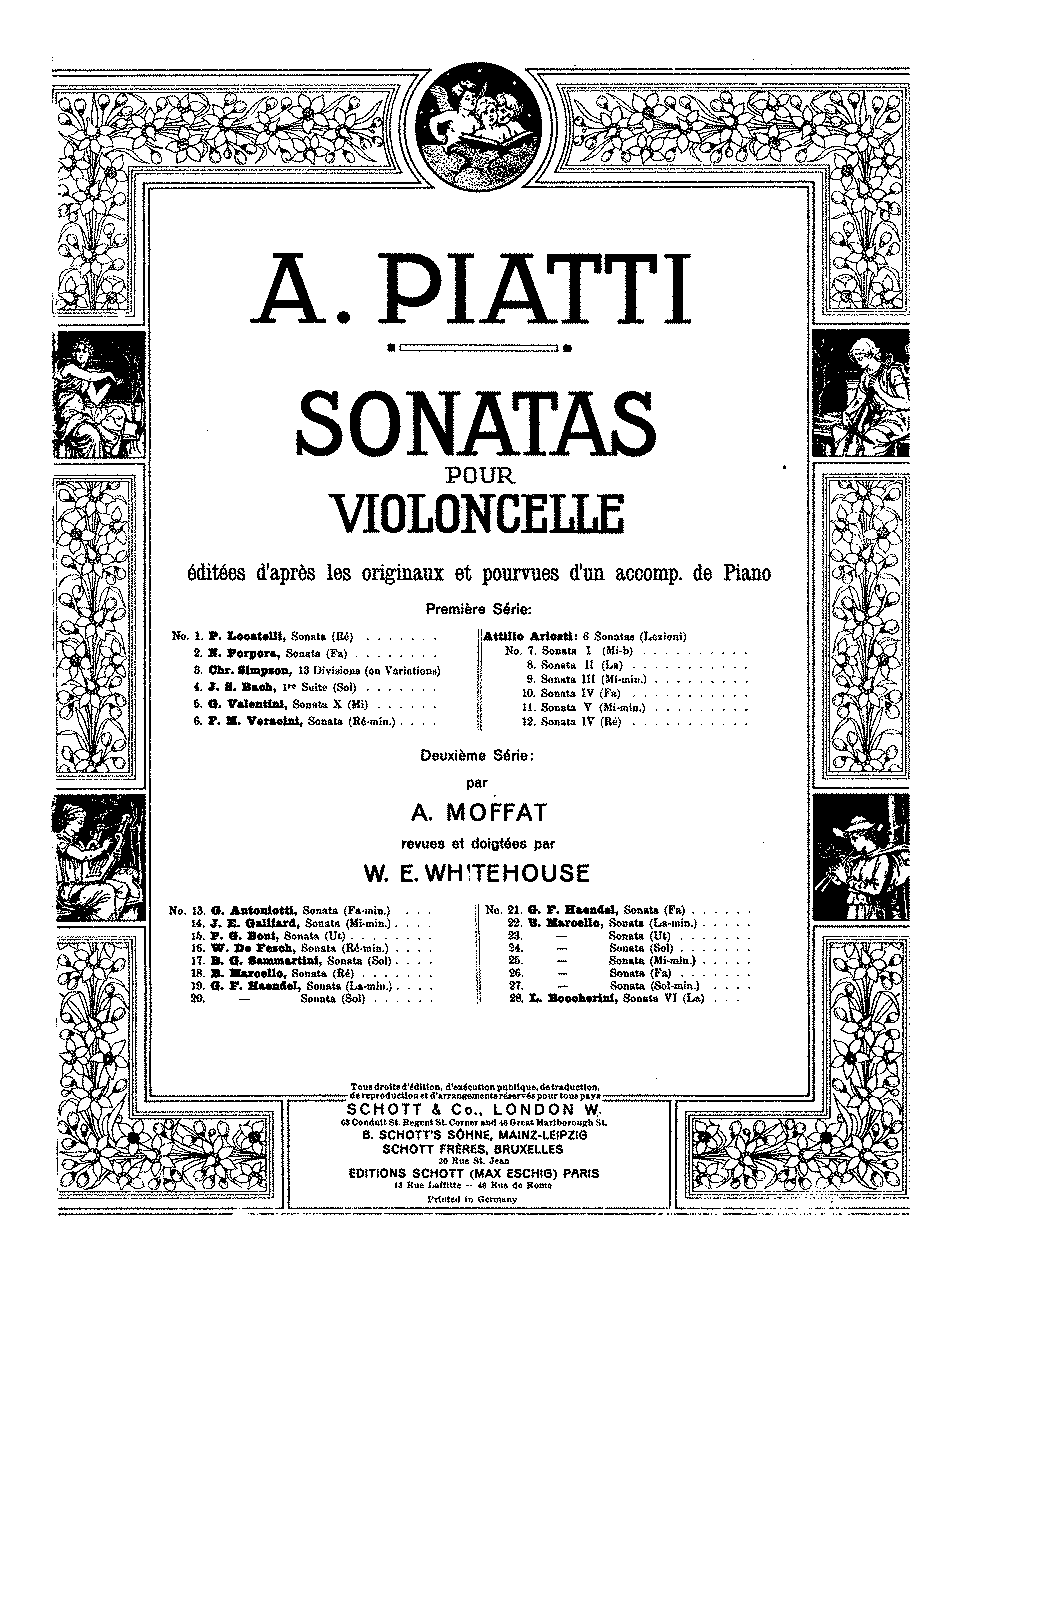 PMLP222963-Porpora - Cello Sonata in F major (Piatti) score.pdf